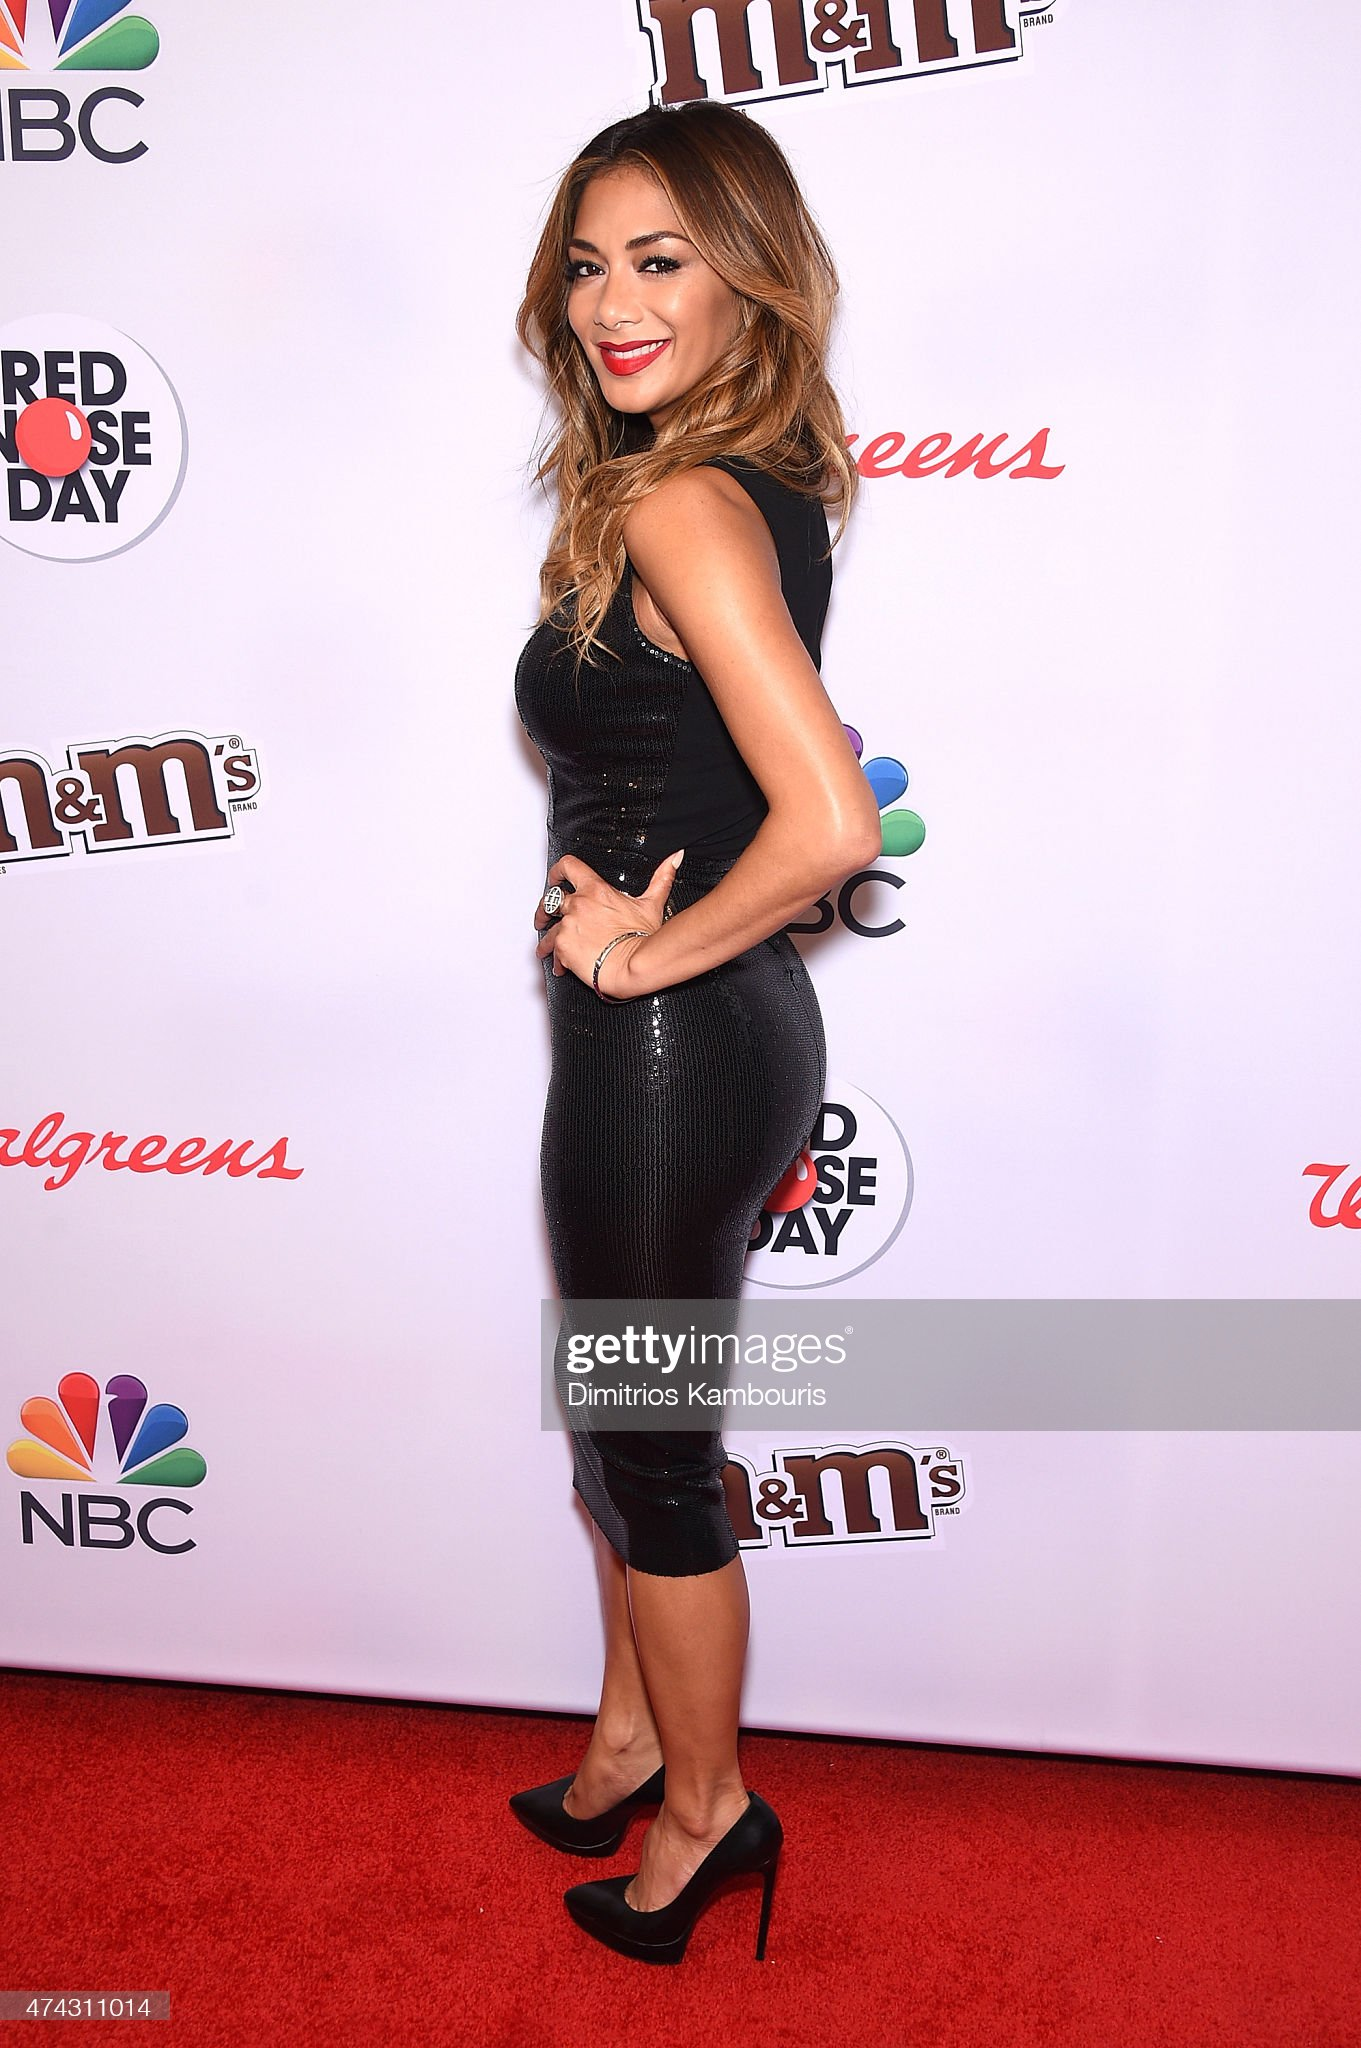 Top 80 Famosas Foroalturas - Página 2 Nicole-scherzinger-attends-the-red-nose-day-charity-event-at-on-may-picture-id474311014?s=2048x2048